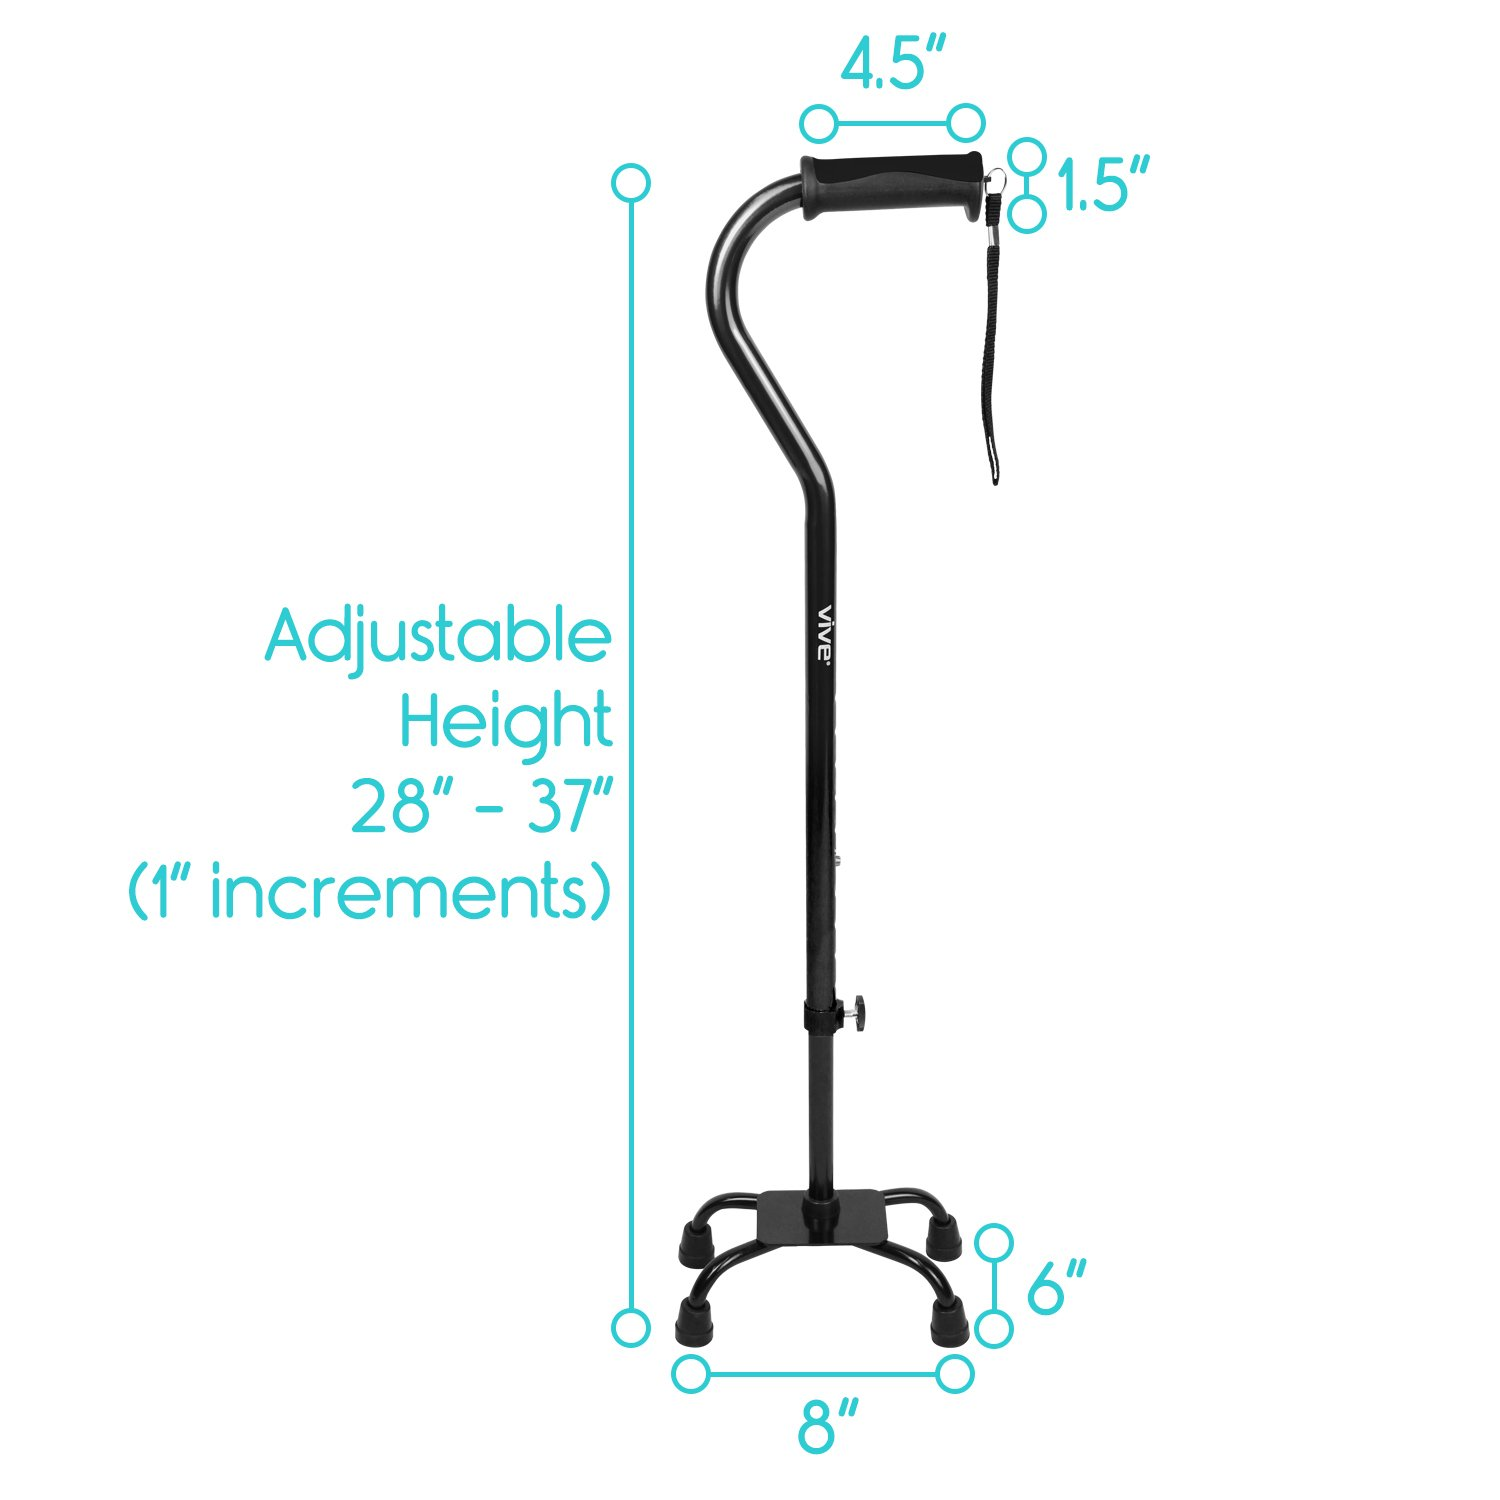 Adjustable Quad Cane by Vive - Lightweight Walking Stick for Men and Women - Walking Staff Can Be Used By Right- or Left-Handed Individuals - Fashionable and Sturdy (Black) by VIVE (Image #8)